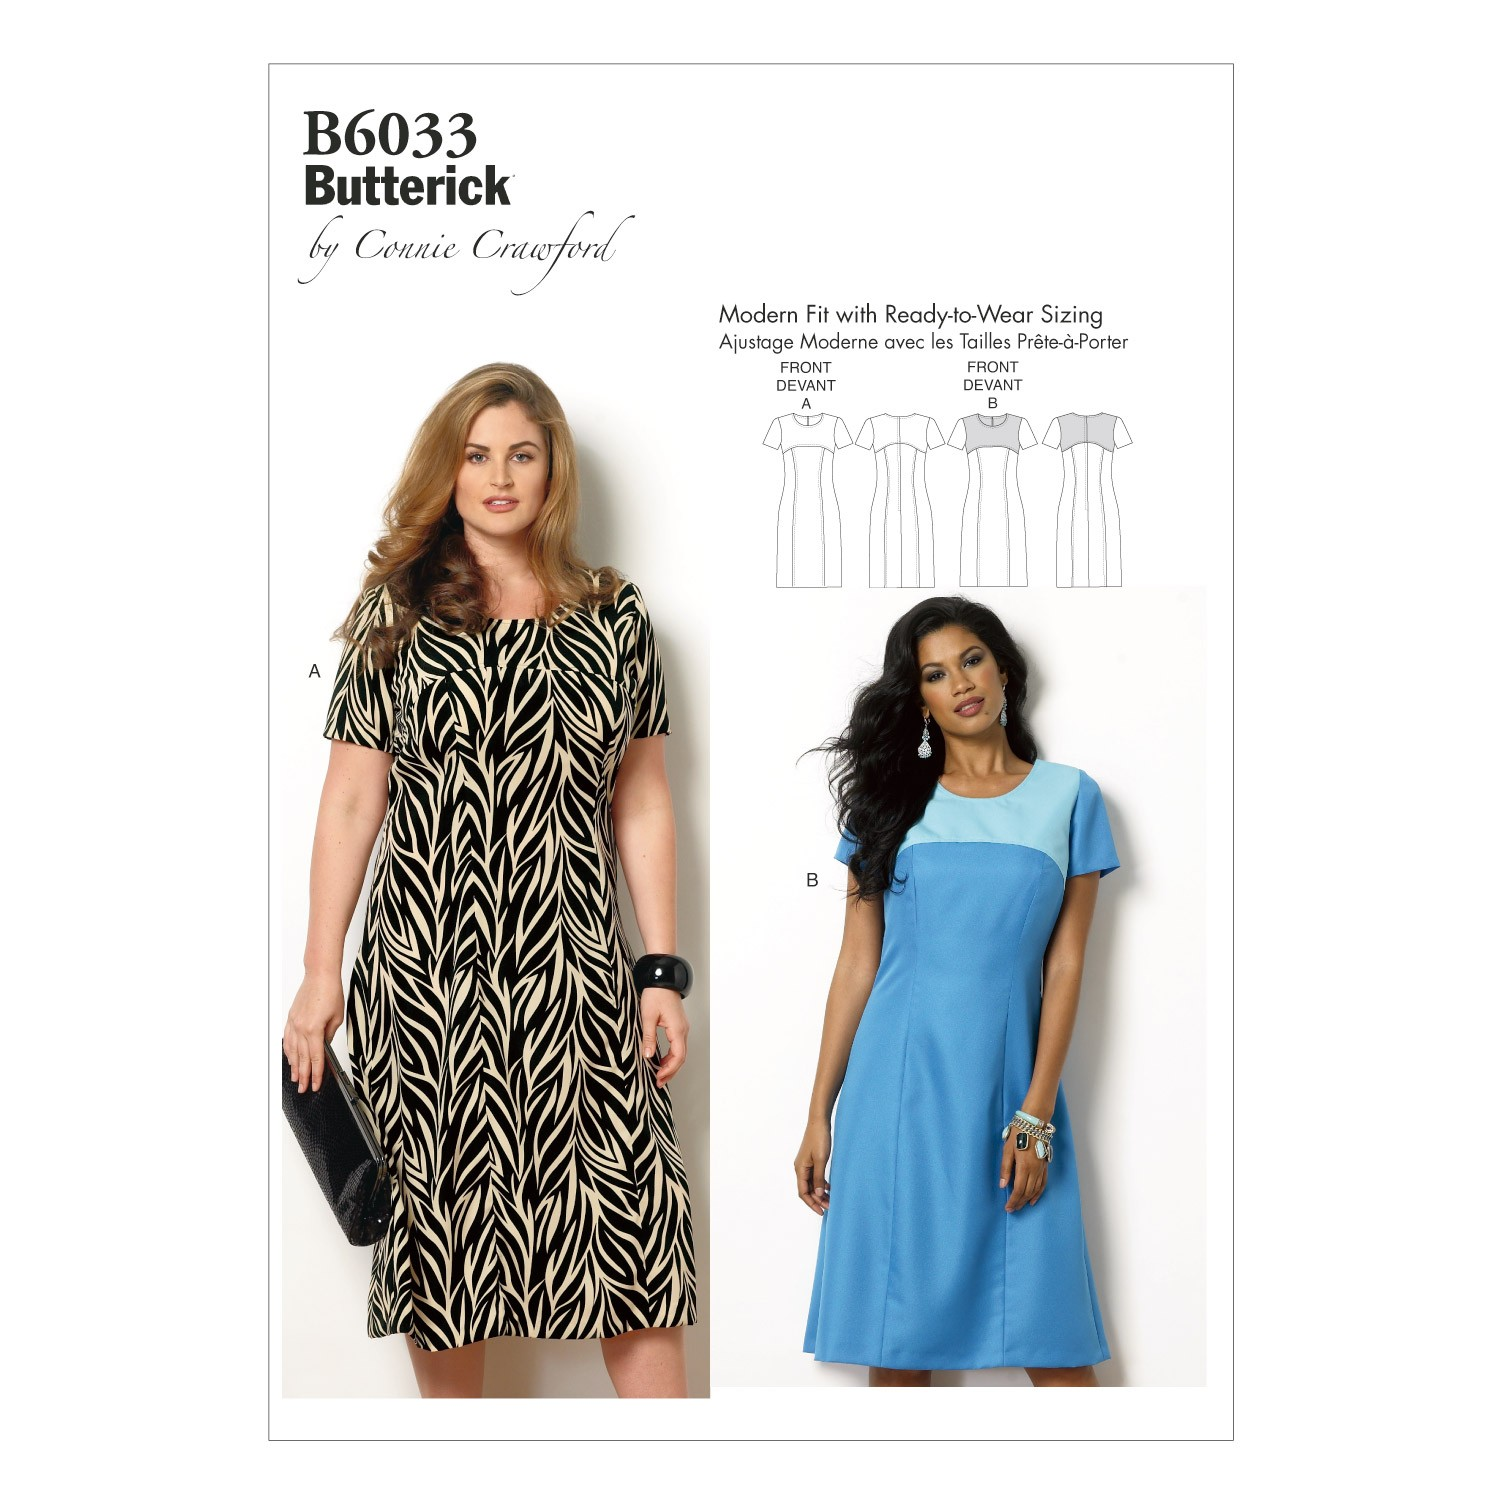 Butterick Sewing Pattern 6033 Misses' Fitted Dress